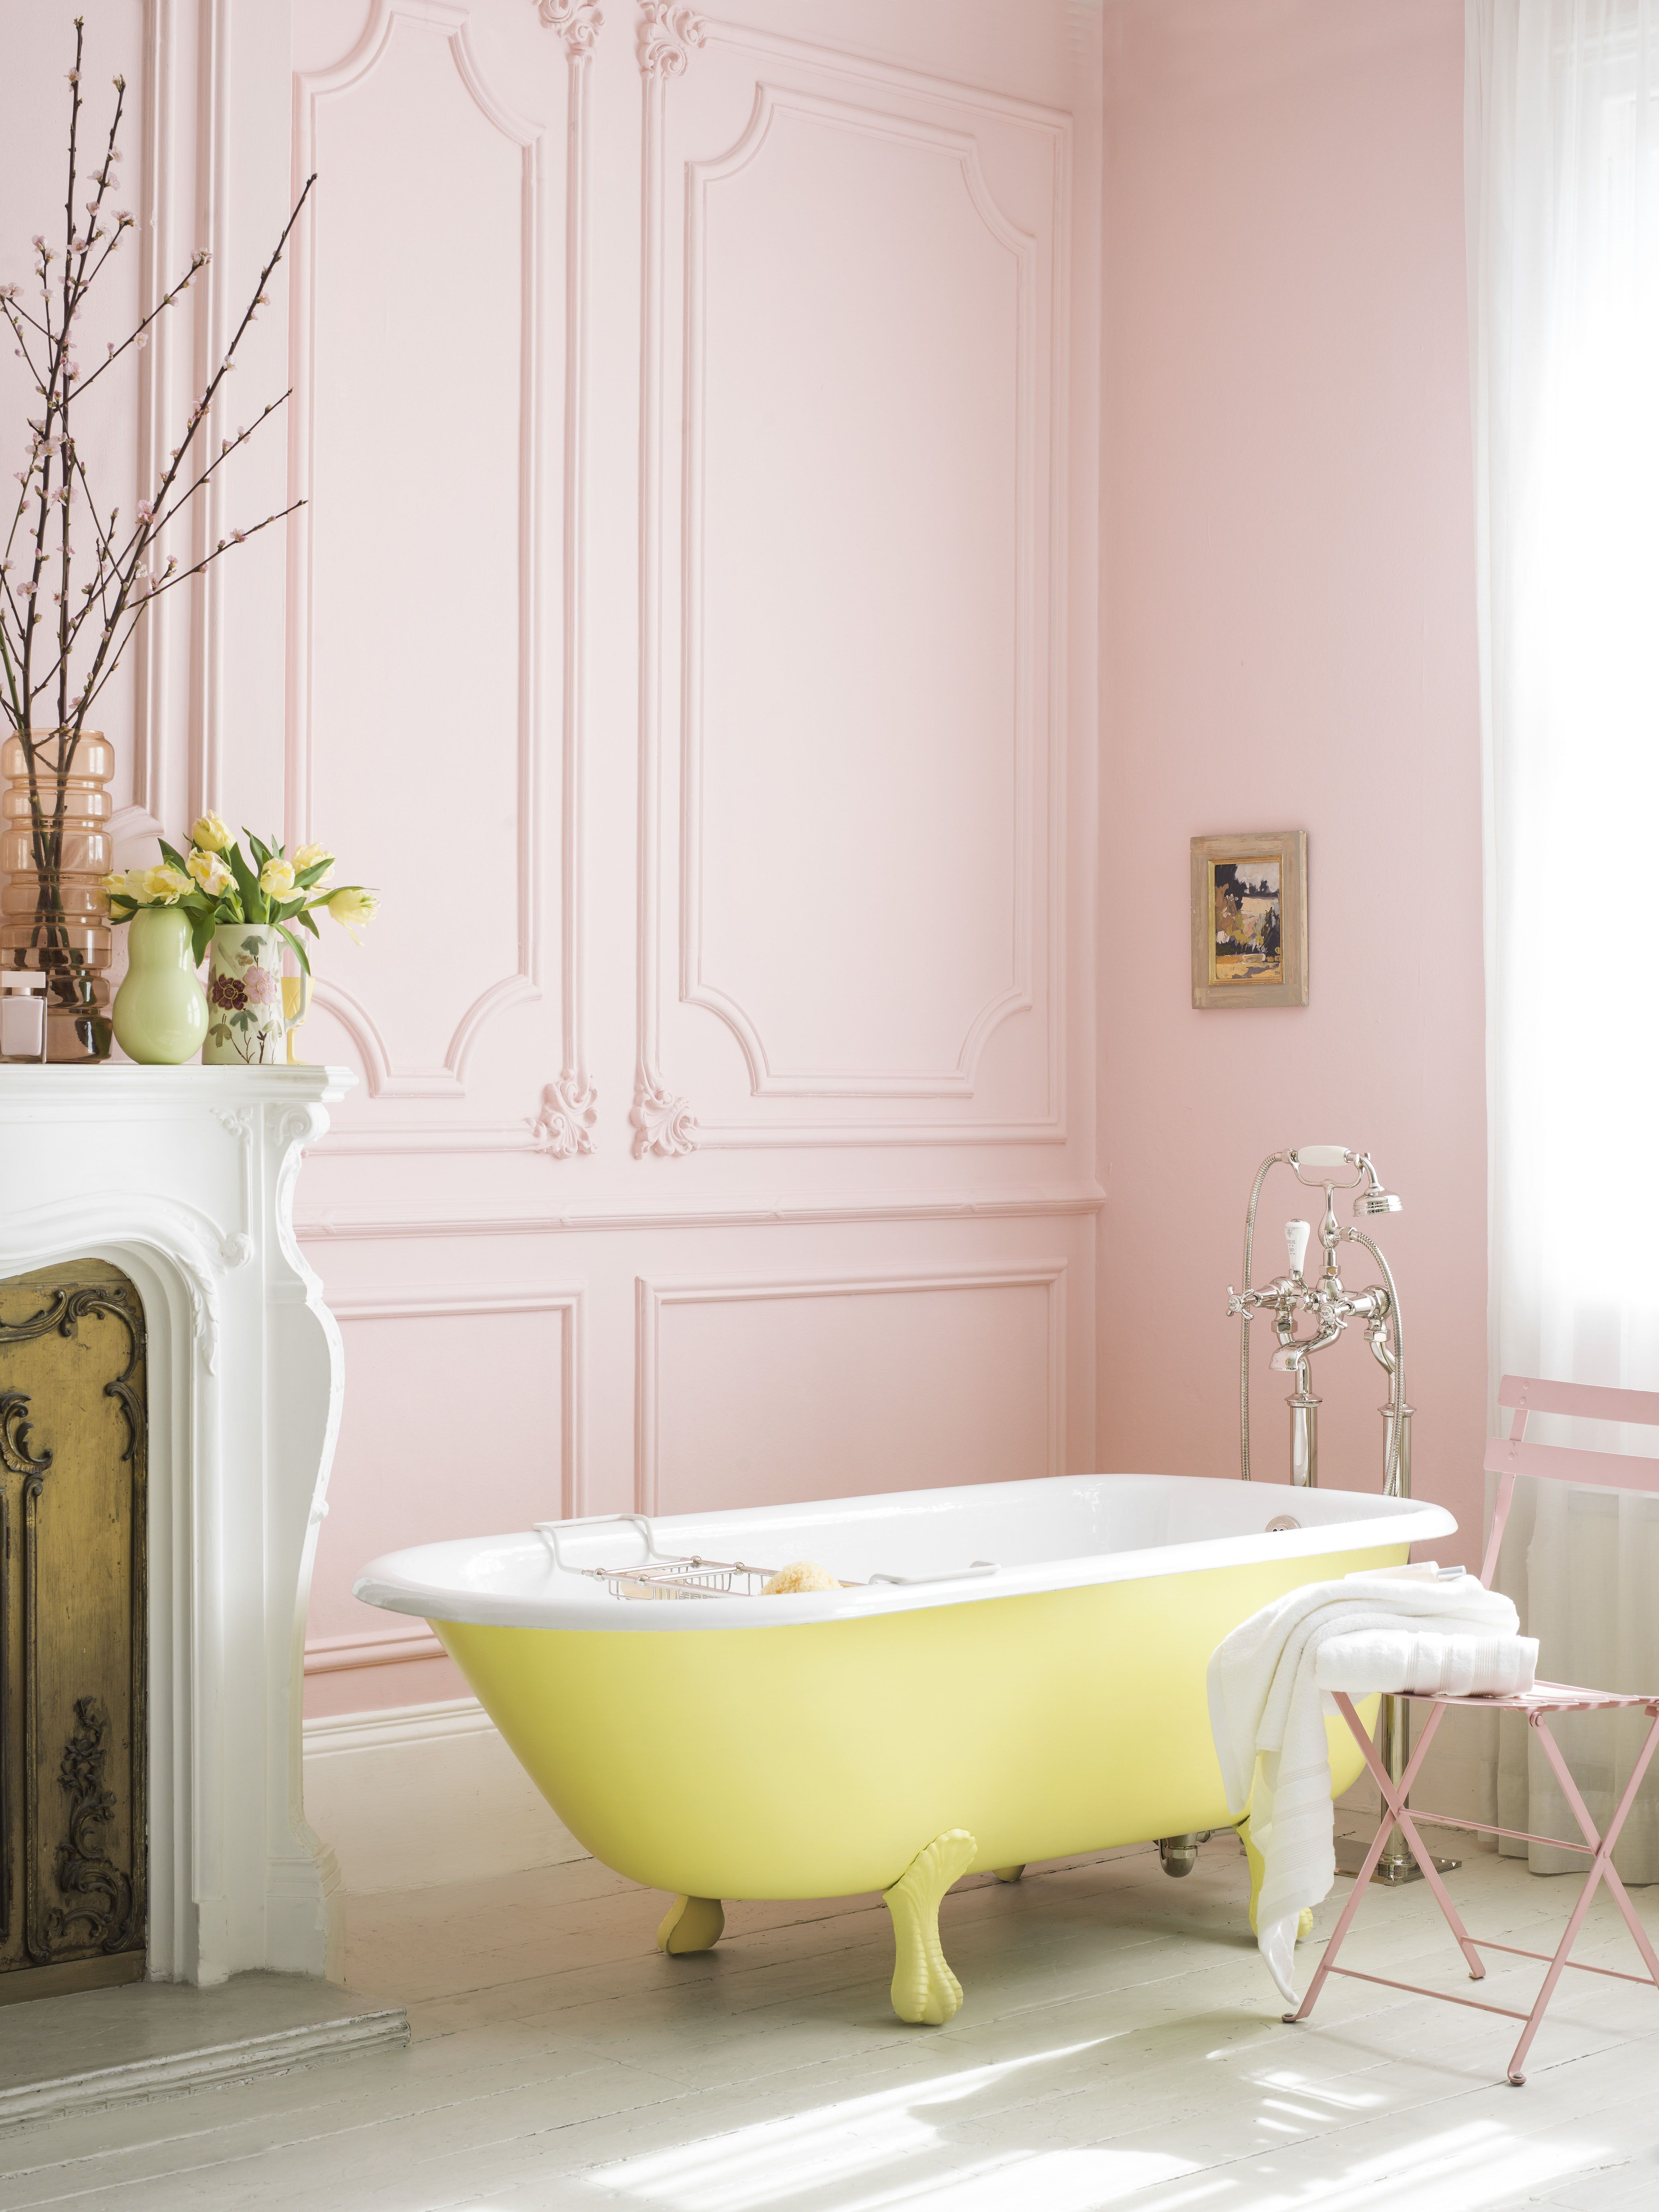 Pink bathroom paint ideas - 27 Clever And Unconventional Bathroom Decorating Ideas